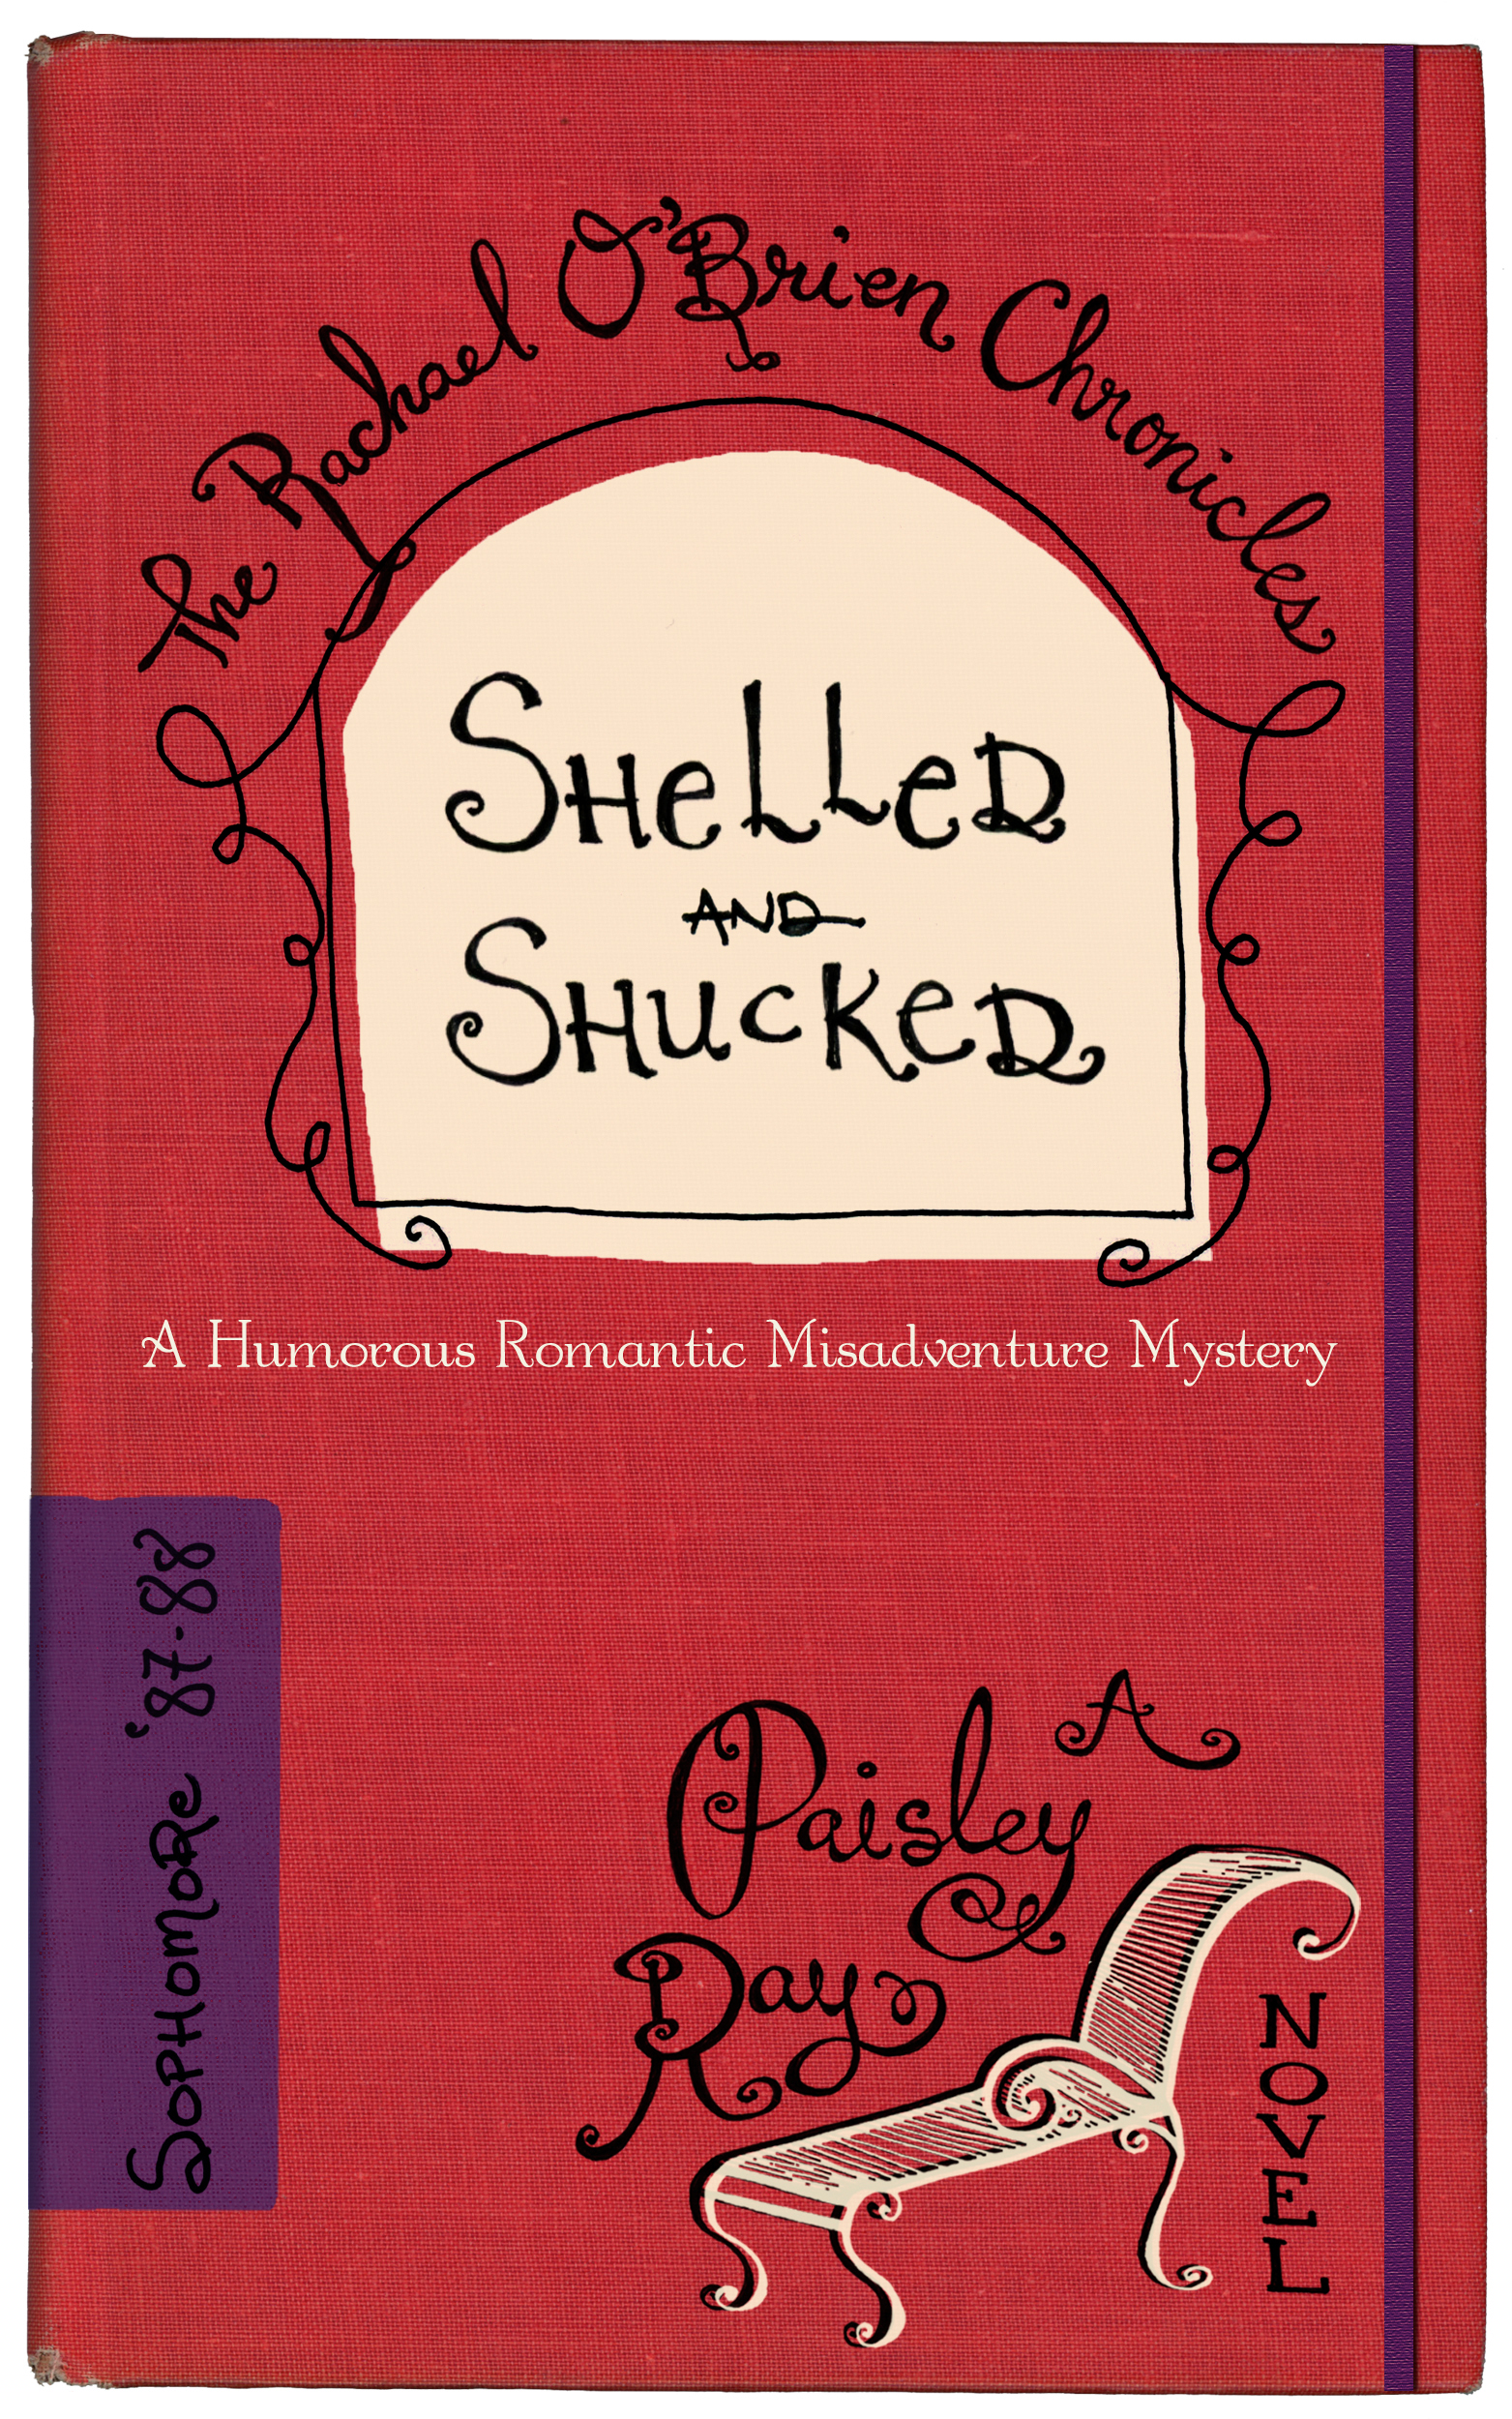 Shelled and Shucked mystery book